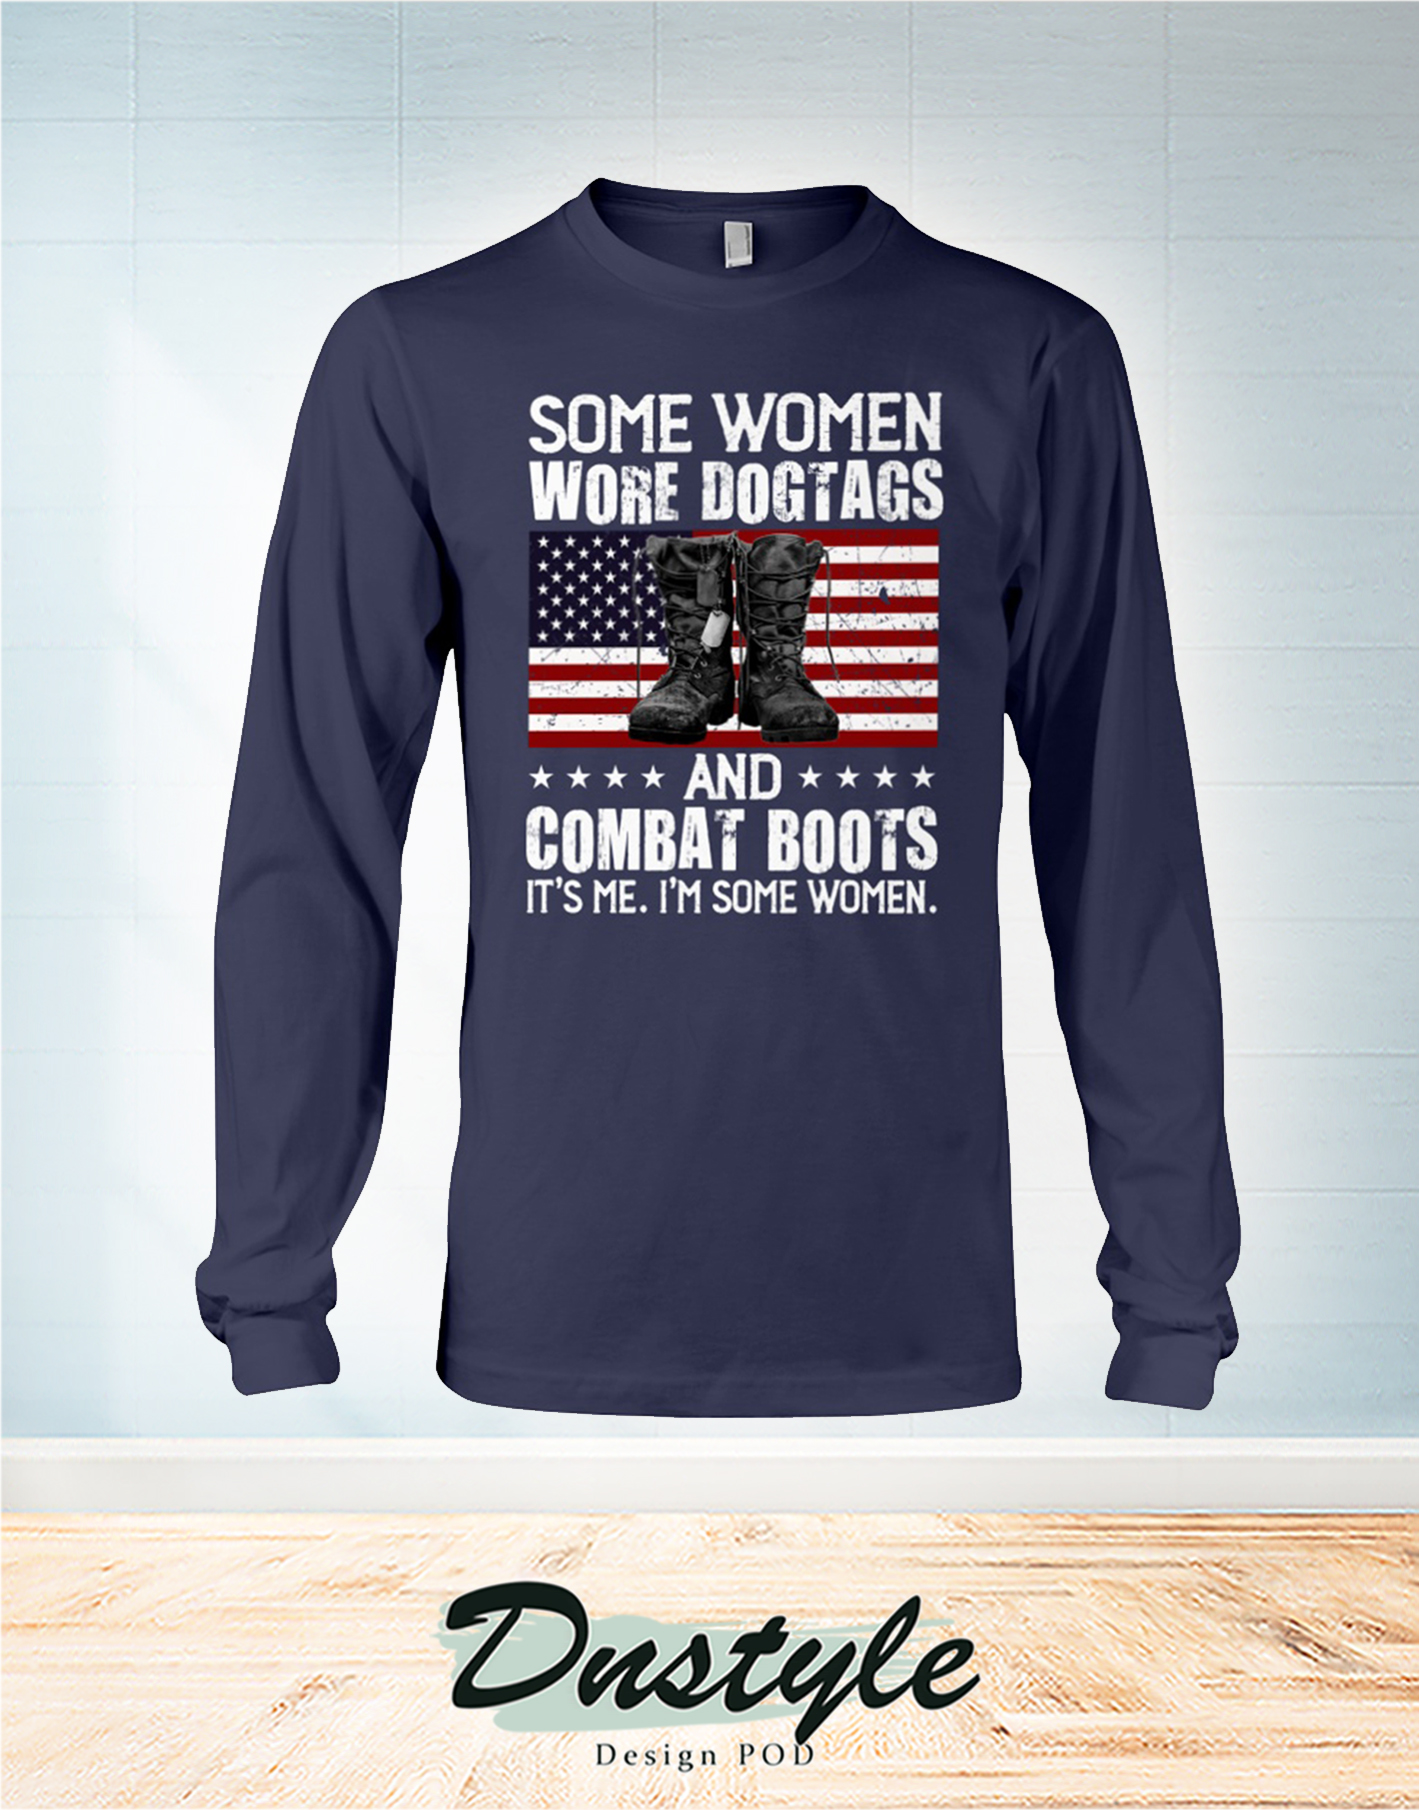 Some woman wore dogtags and combat boots 4th of july long sleeve